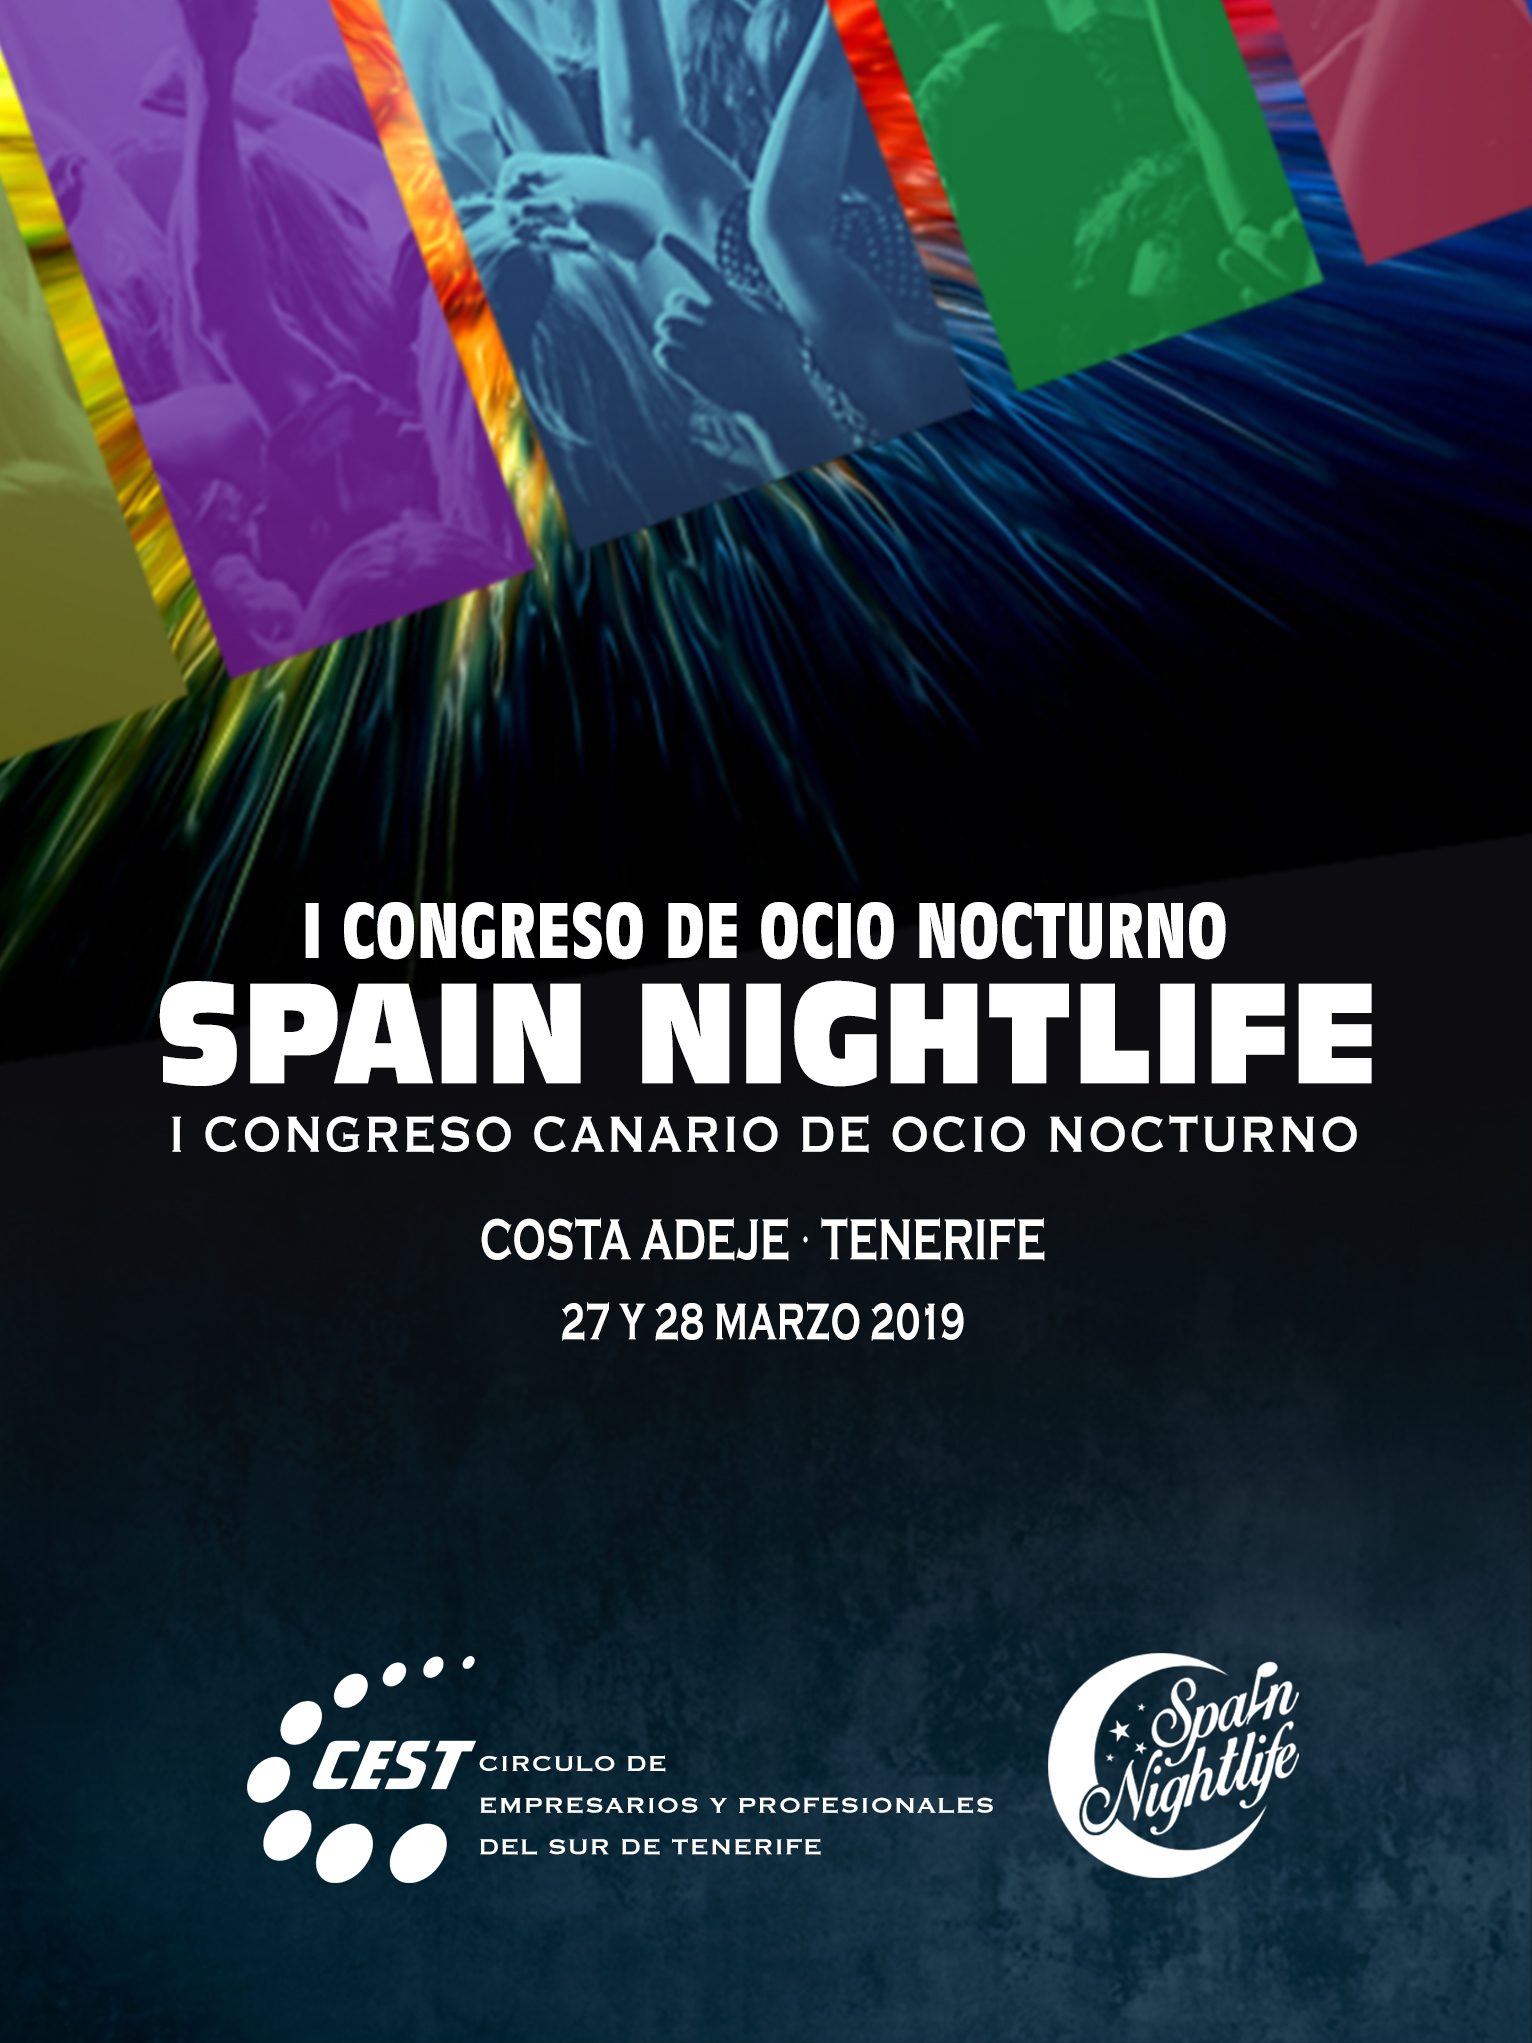 CONGRESO DE OCIO NOCTURNO SPAIN NIGHTLIFE 2019 – TENERIFE